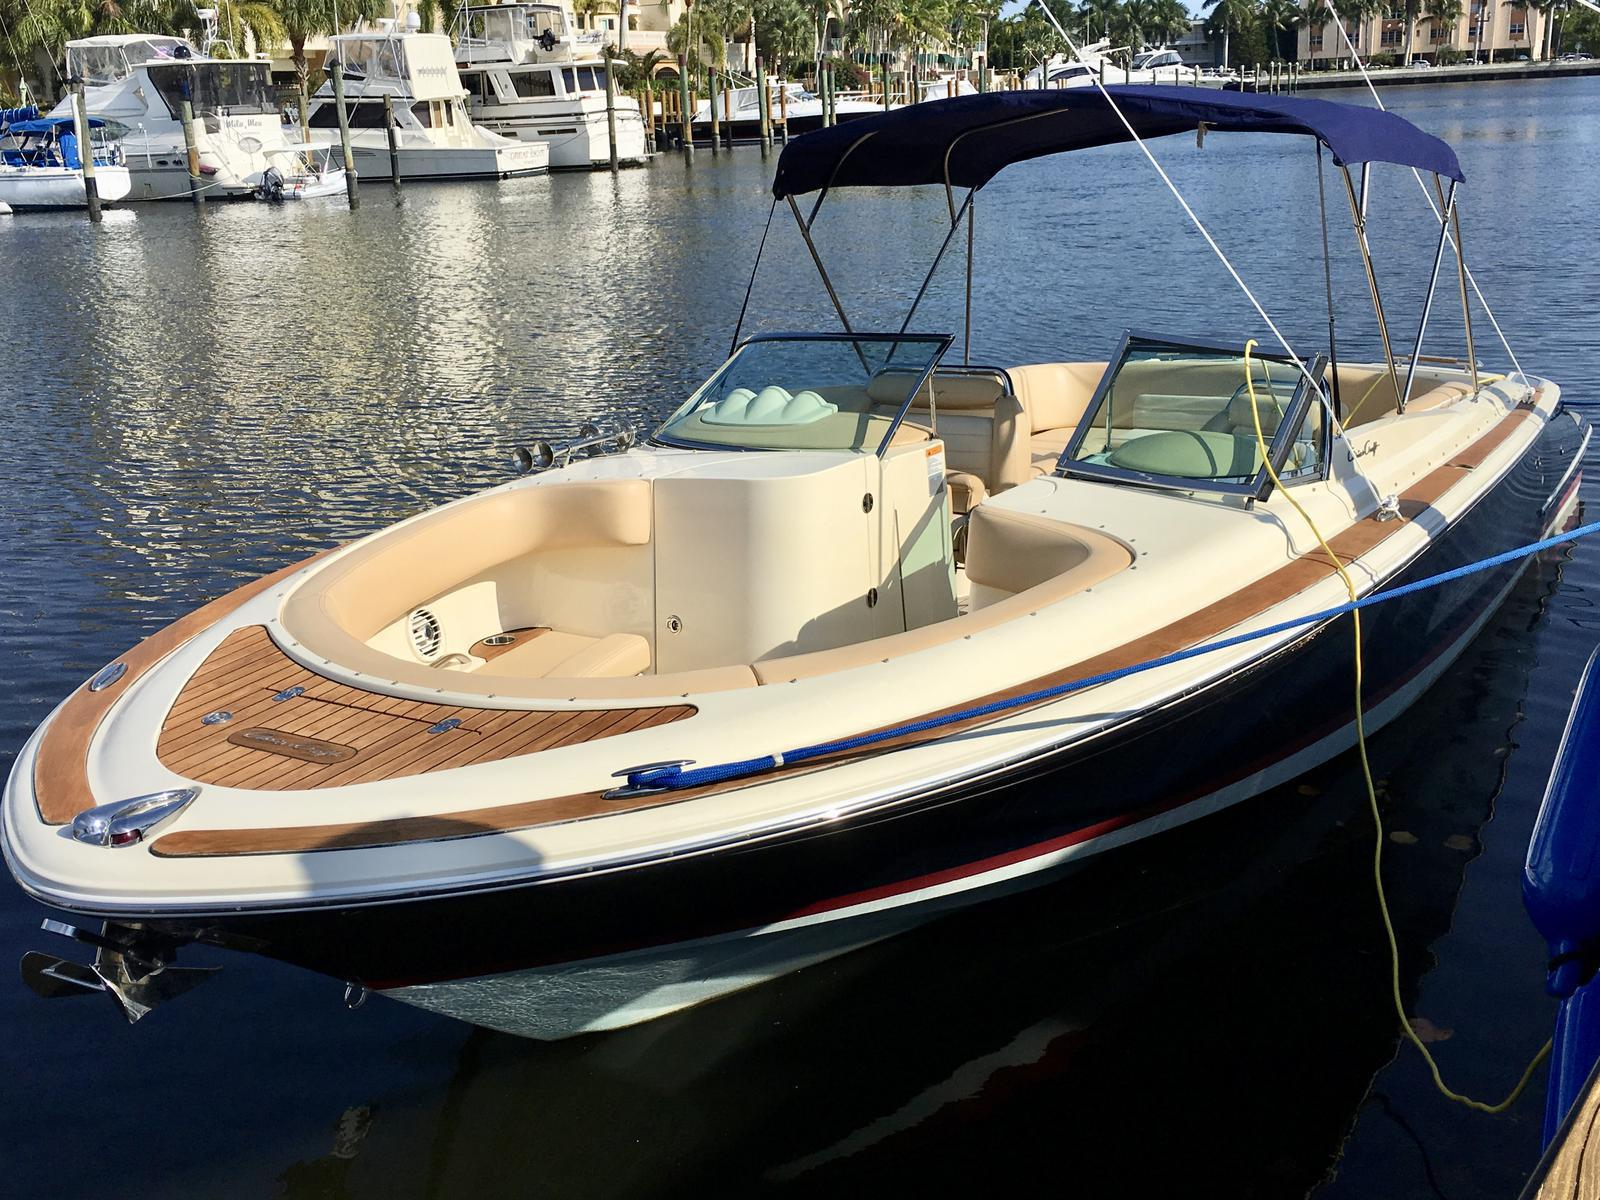 Inventory from Yamaha, Outerlimits and Chris Craft FB Marine